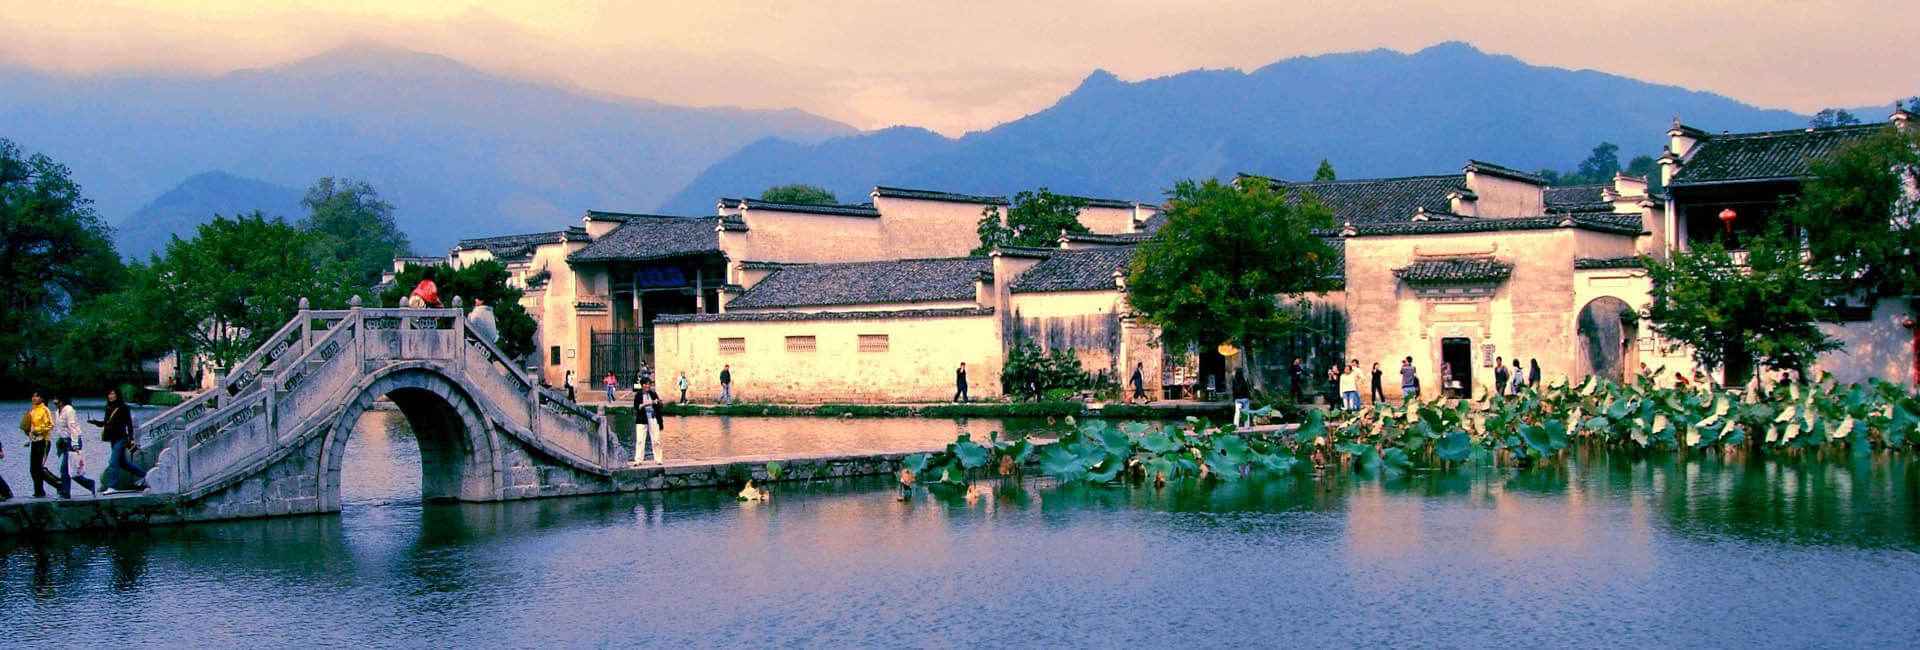 6 Days Xiamen Nanjing Tulou & Yellow Mountain Amusing Tour